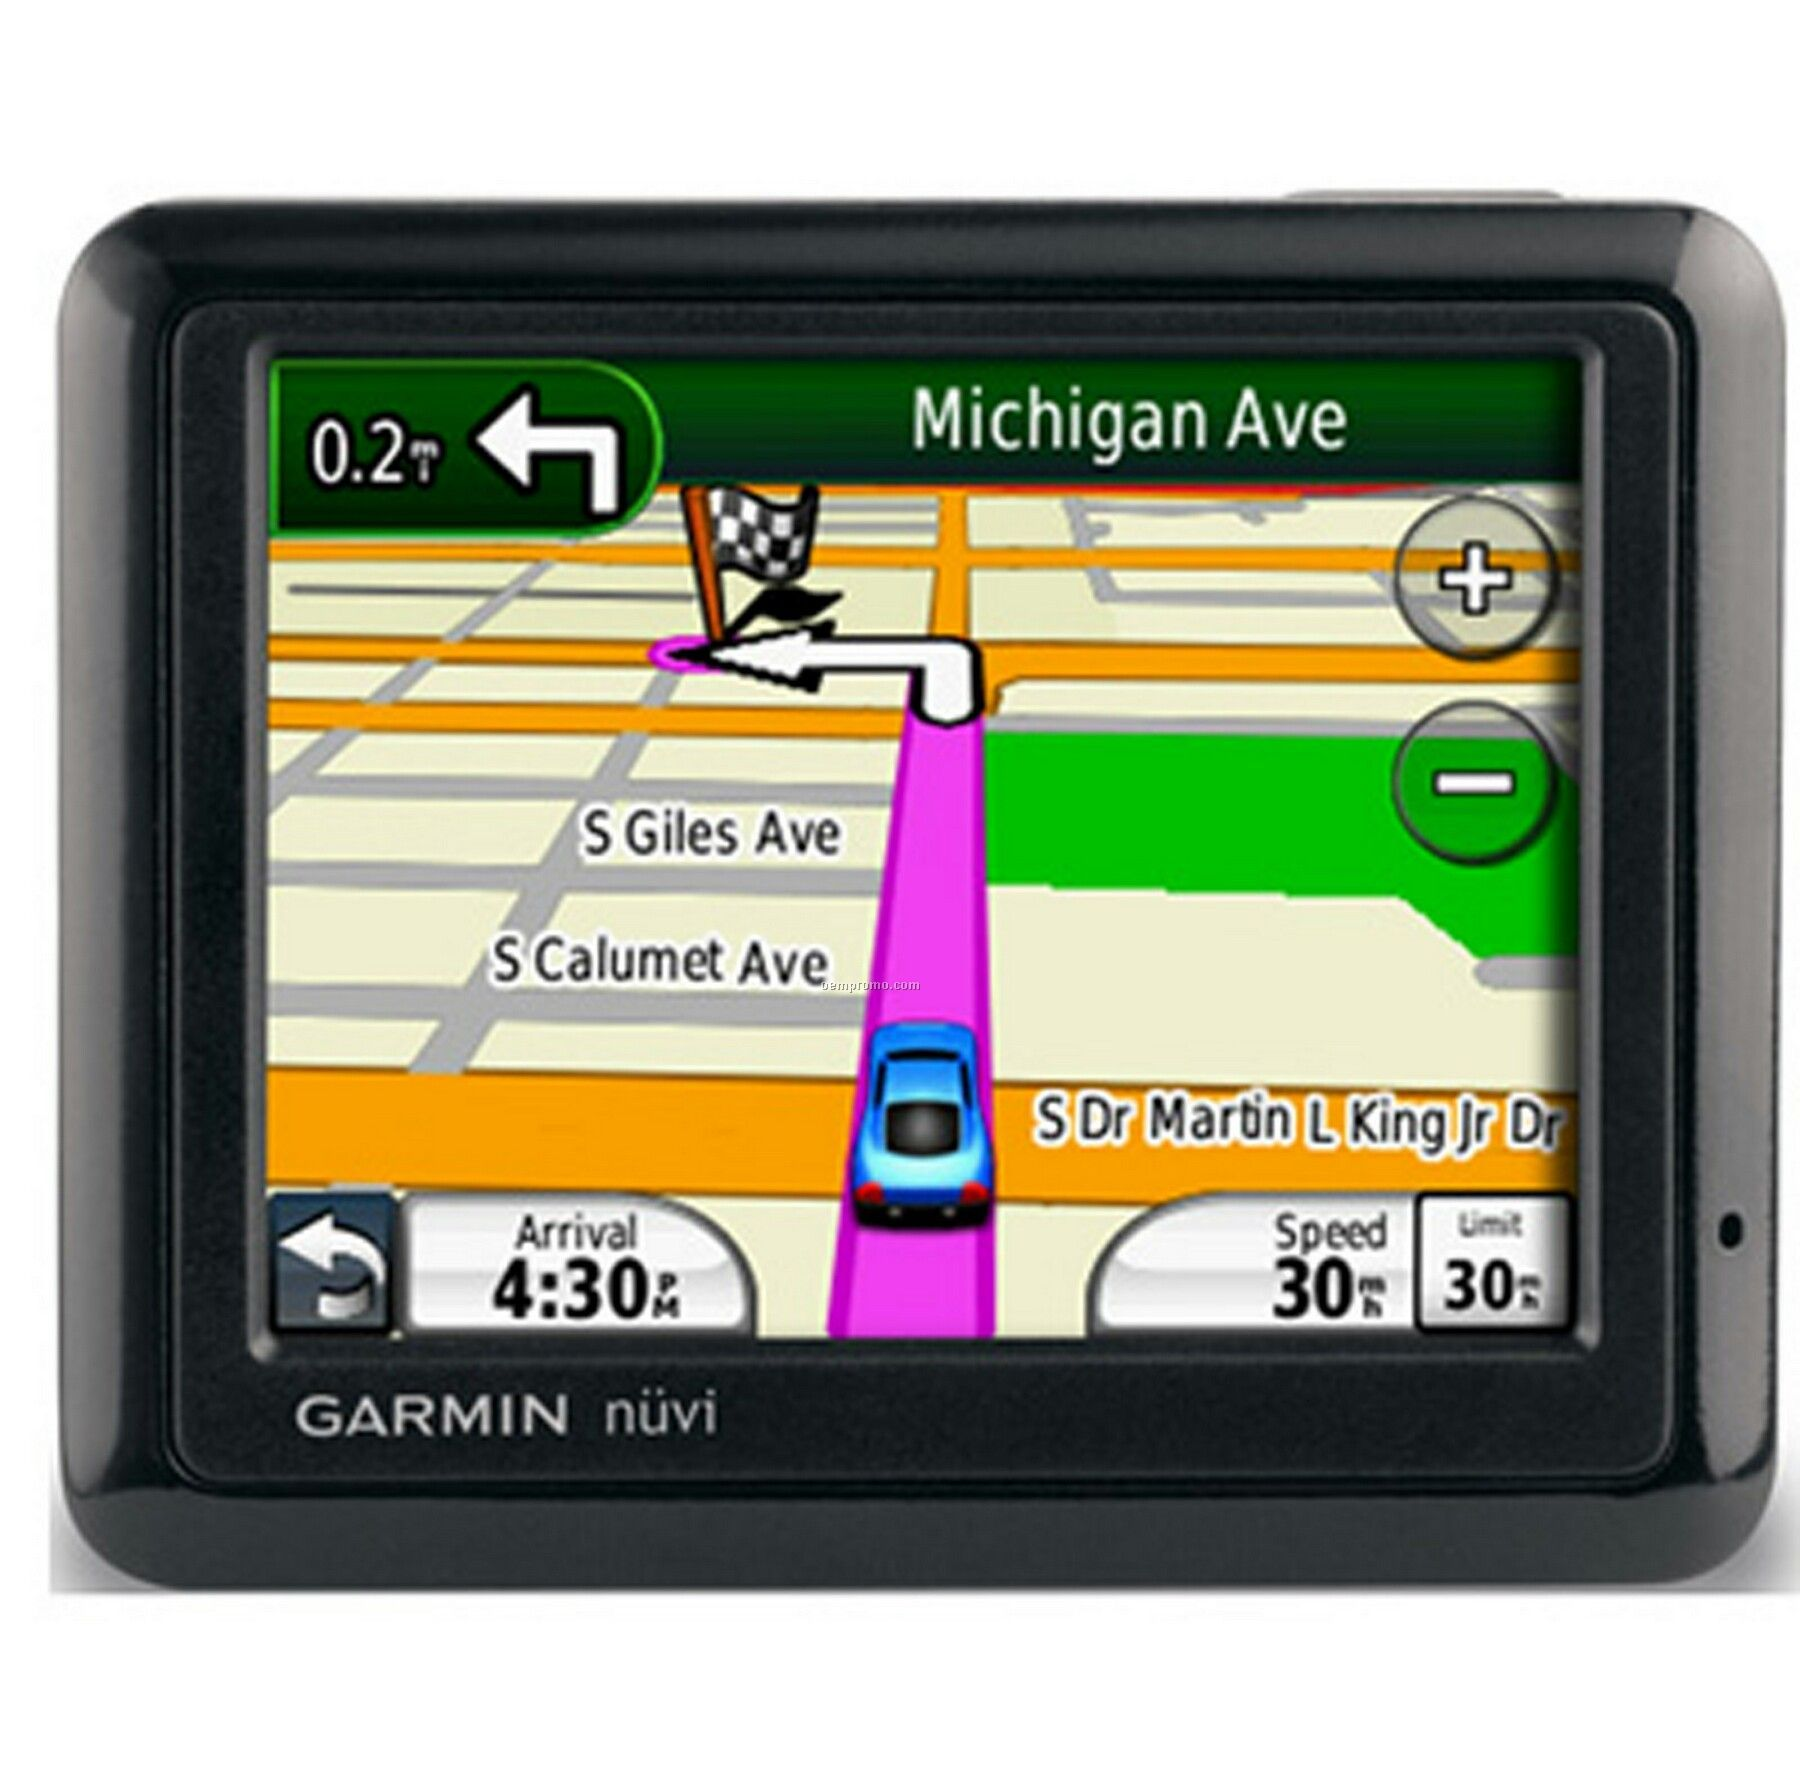 Garmin Nuvi 1260t Gps Vehicle Navigation System Bluetooth Enabled